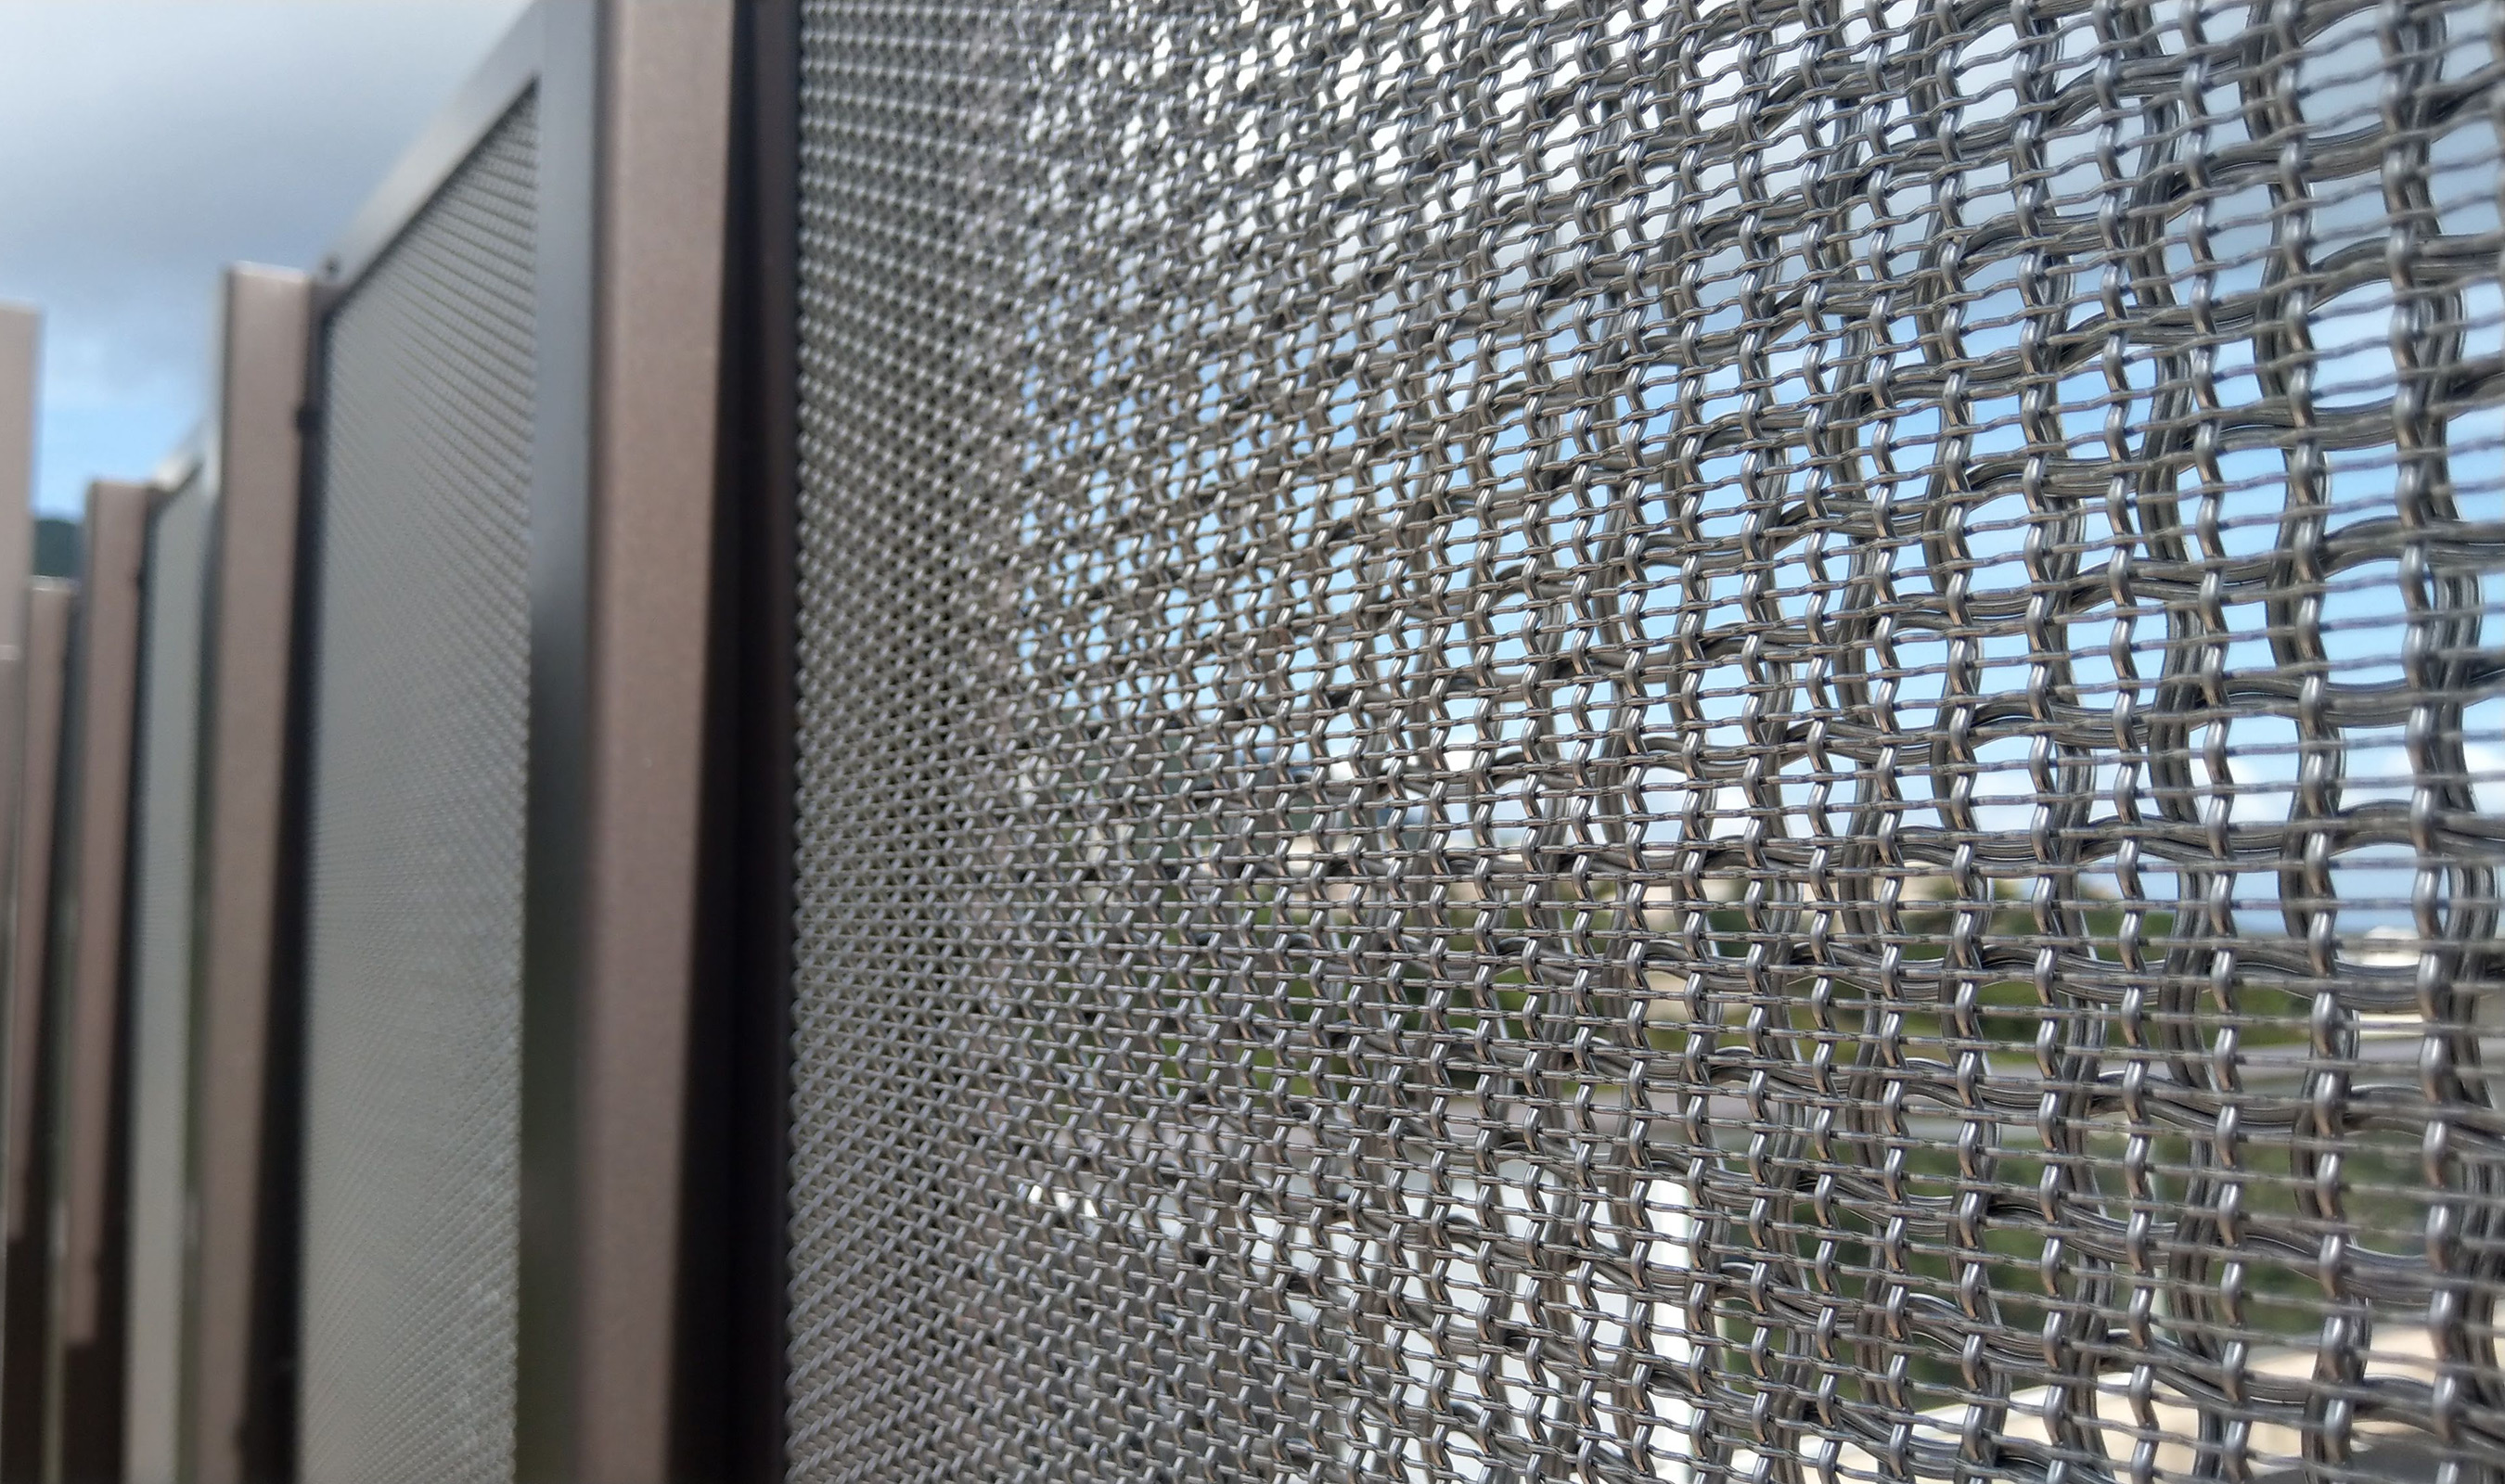 They obscuring effect of the layered wire mesh is enhanced when viewed at an angle.